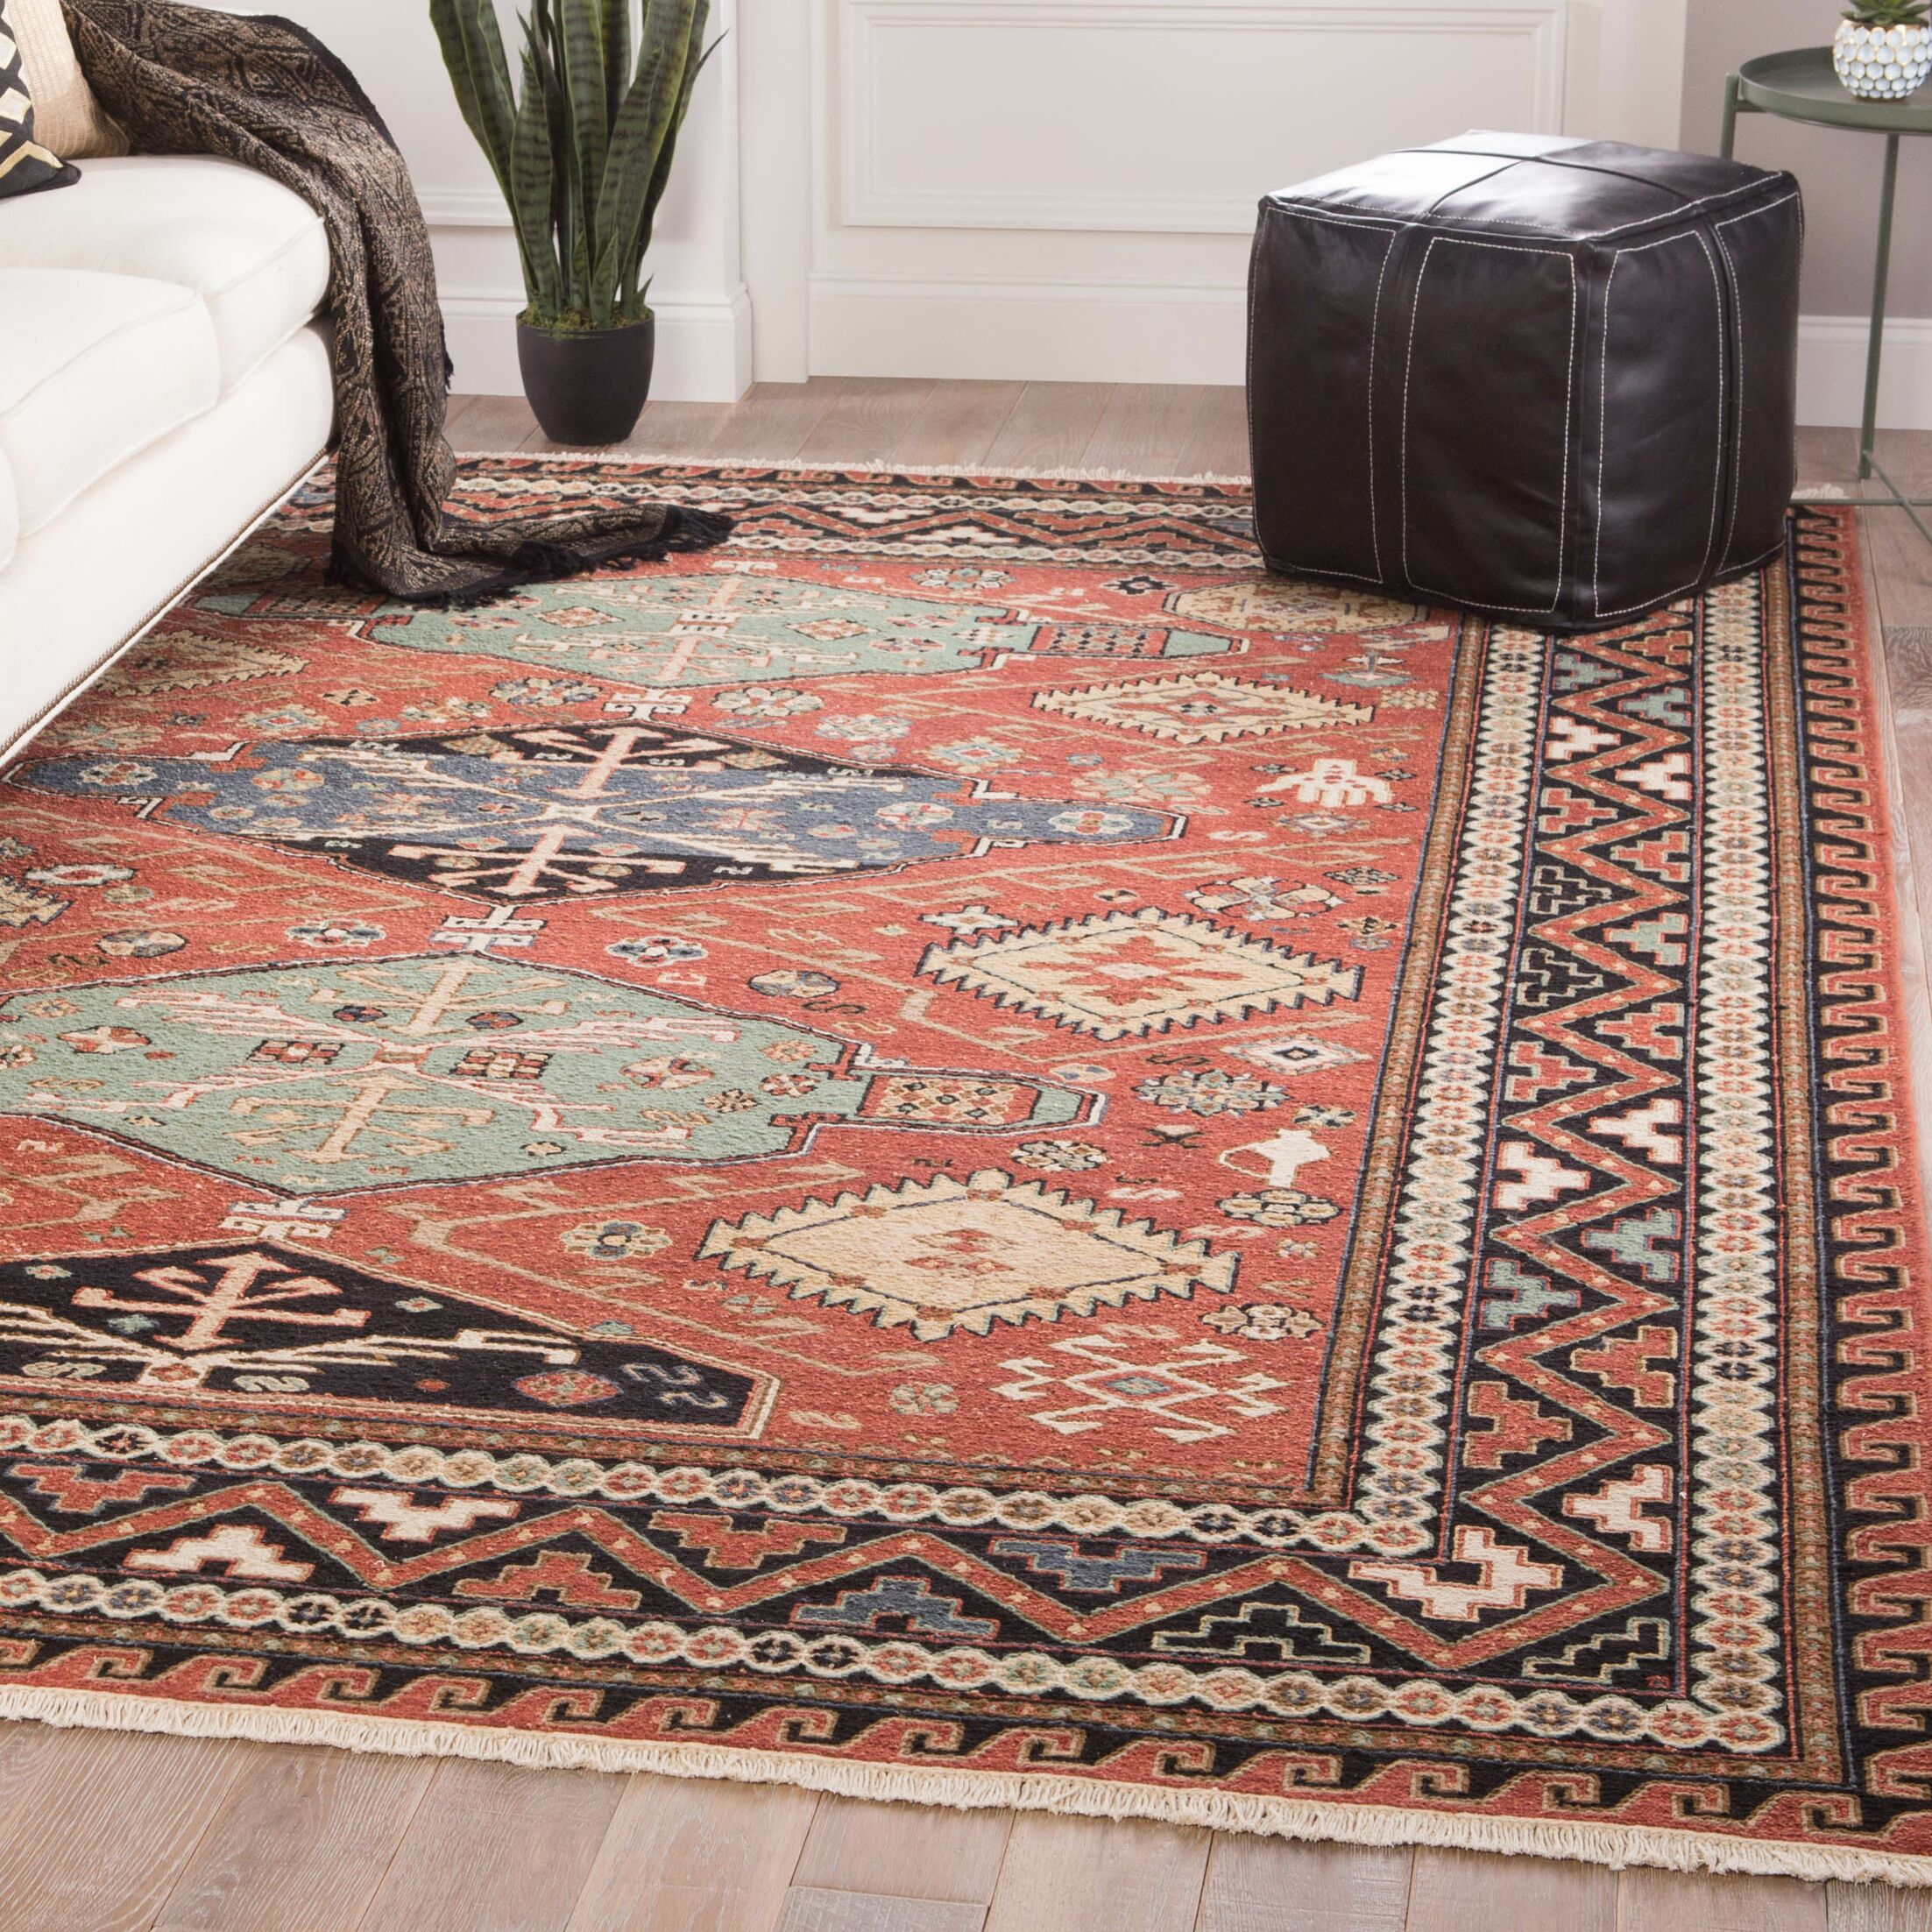 Wickline Medallion Hand-Knotted Wool Red Area Rug Rug Size: Rectangle 2' x 3'